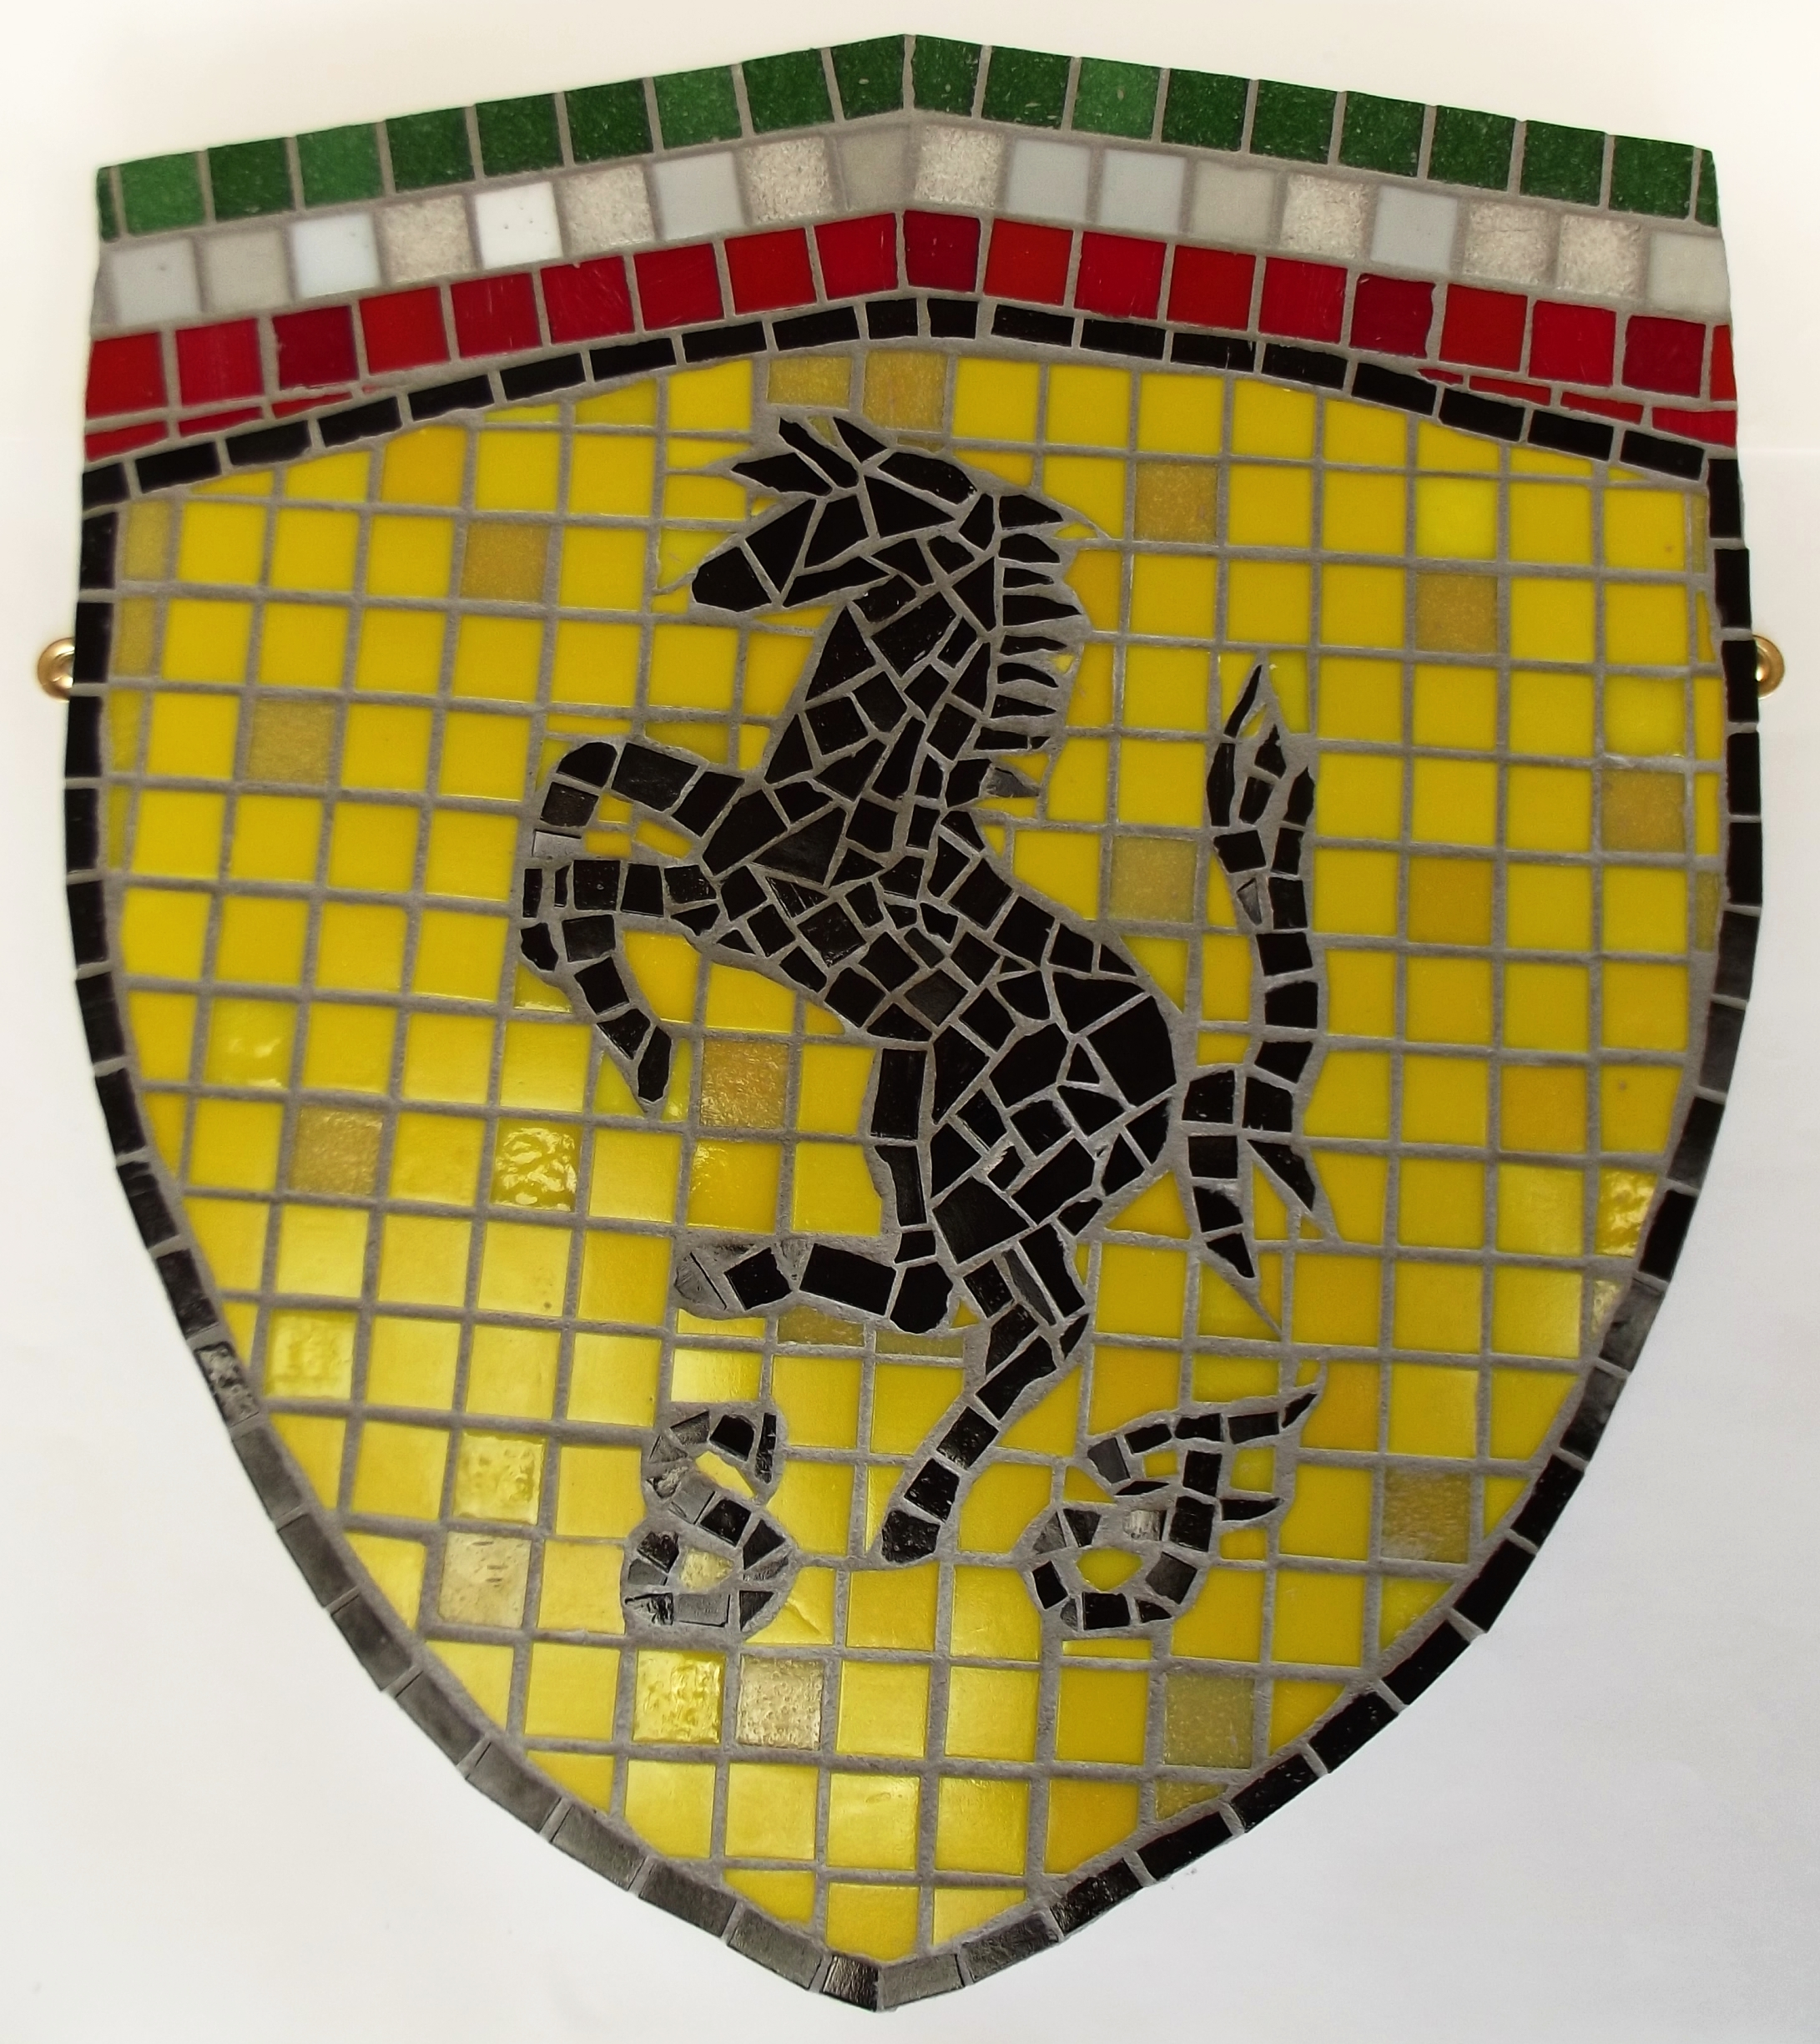 """""""Ferrari"""" badge. Vitreous glass on board. Approx. 15-1/2 ins. x 17-1/4 ins.  FOR SALE please go to Contact page."""